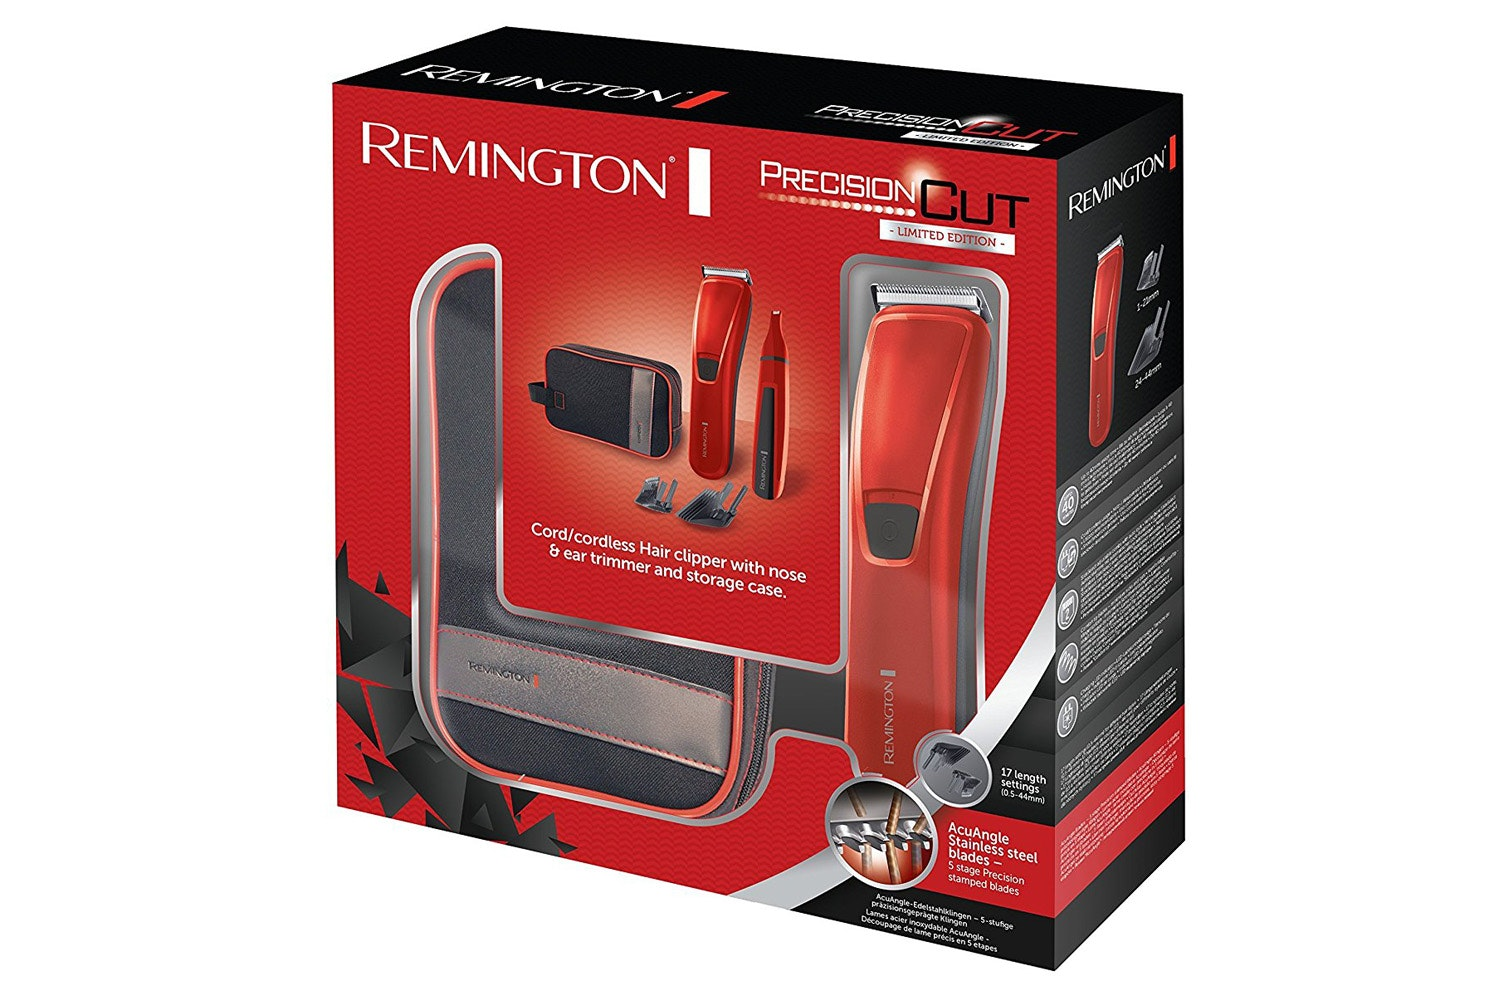 Remington Precision Cut Hair Clipper Gift Set | HC5302